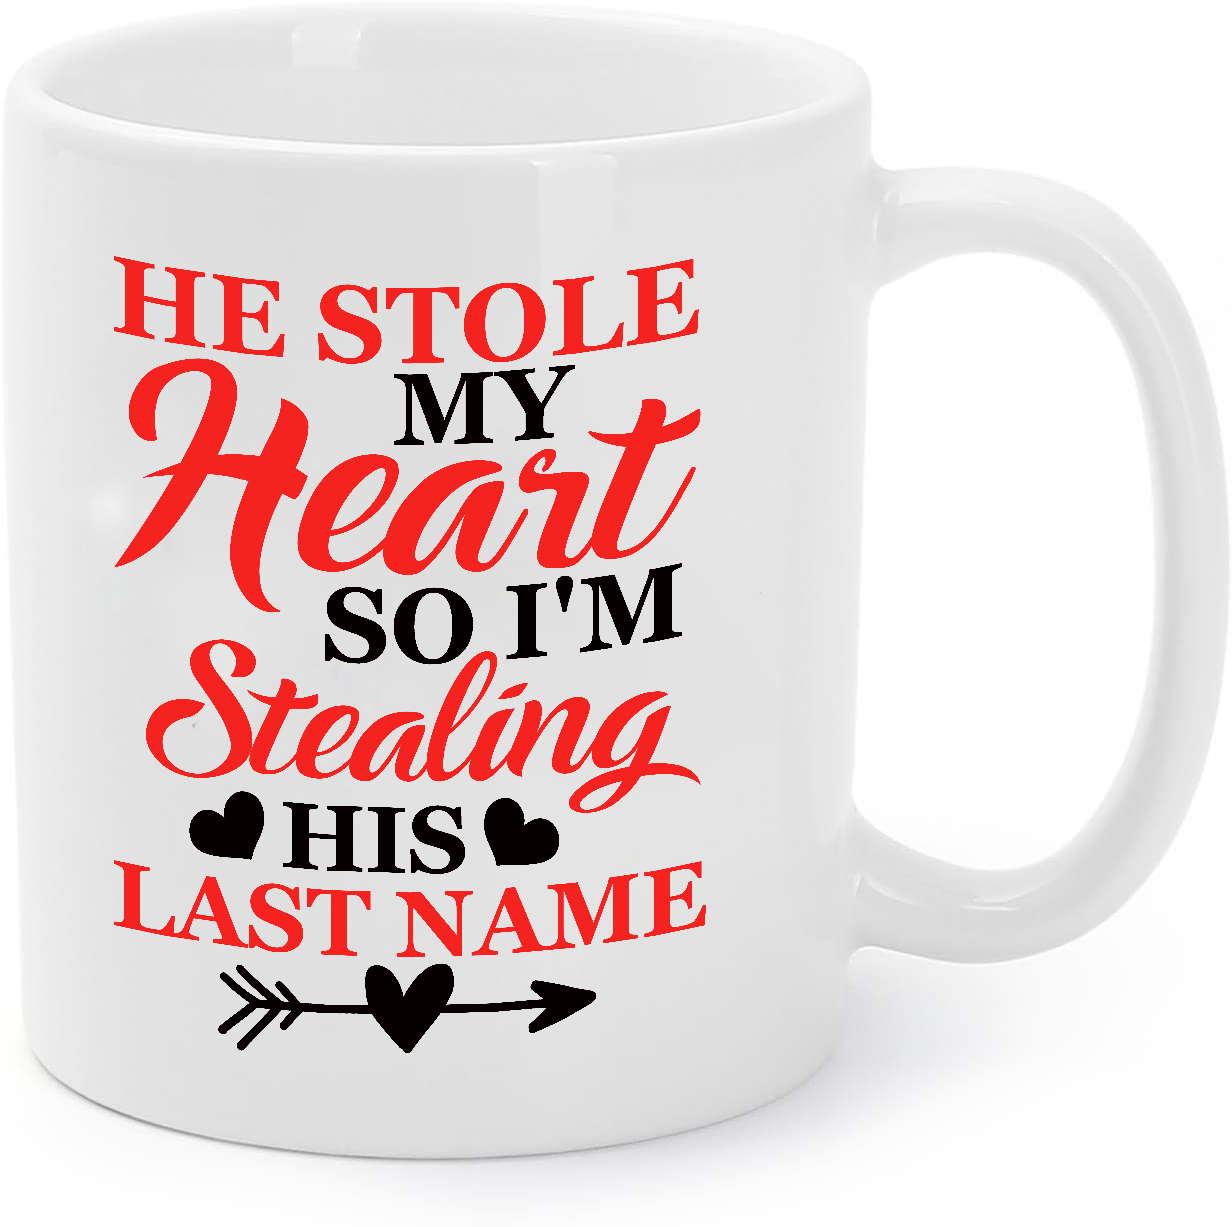 Primary image for He Stole My Heart So I'm Stealing His Last Name Coffee Mug